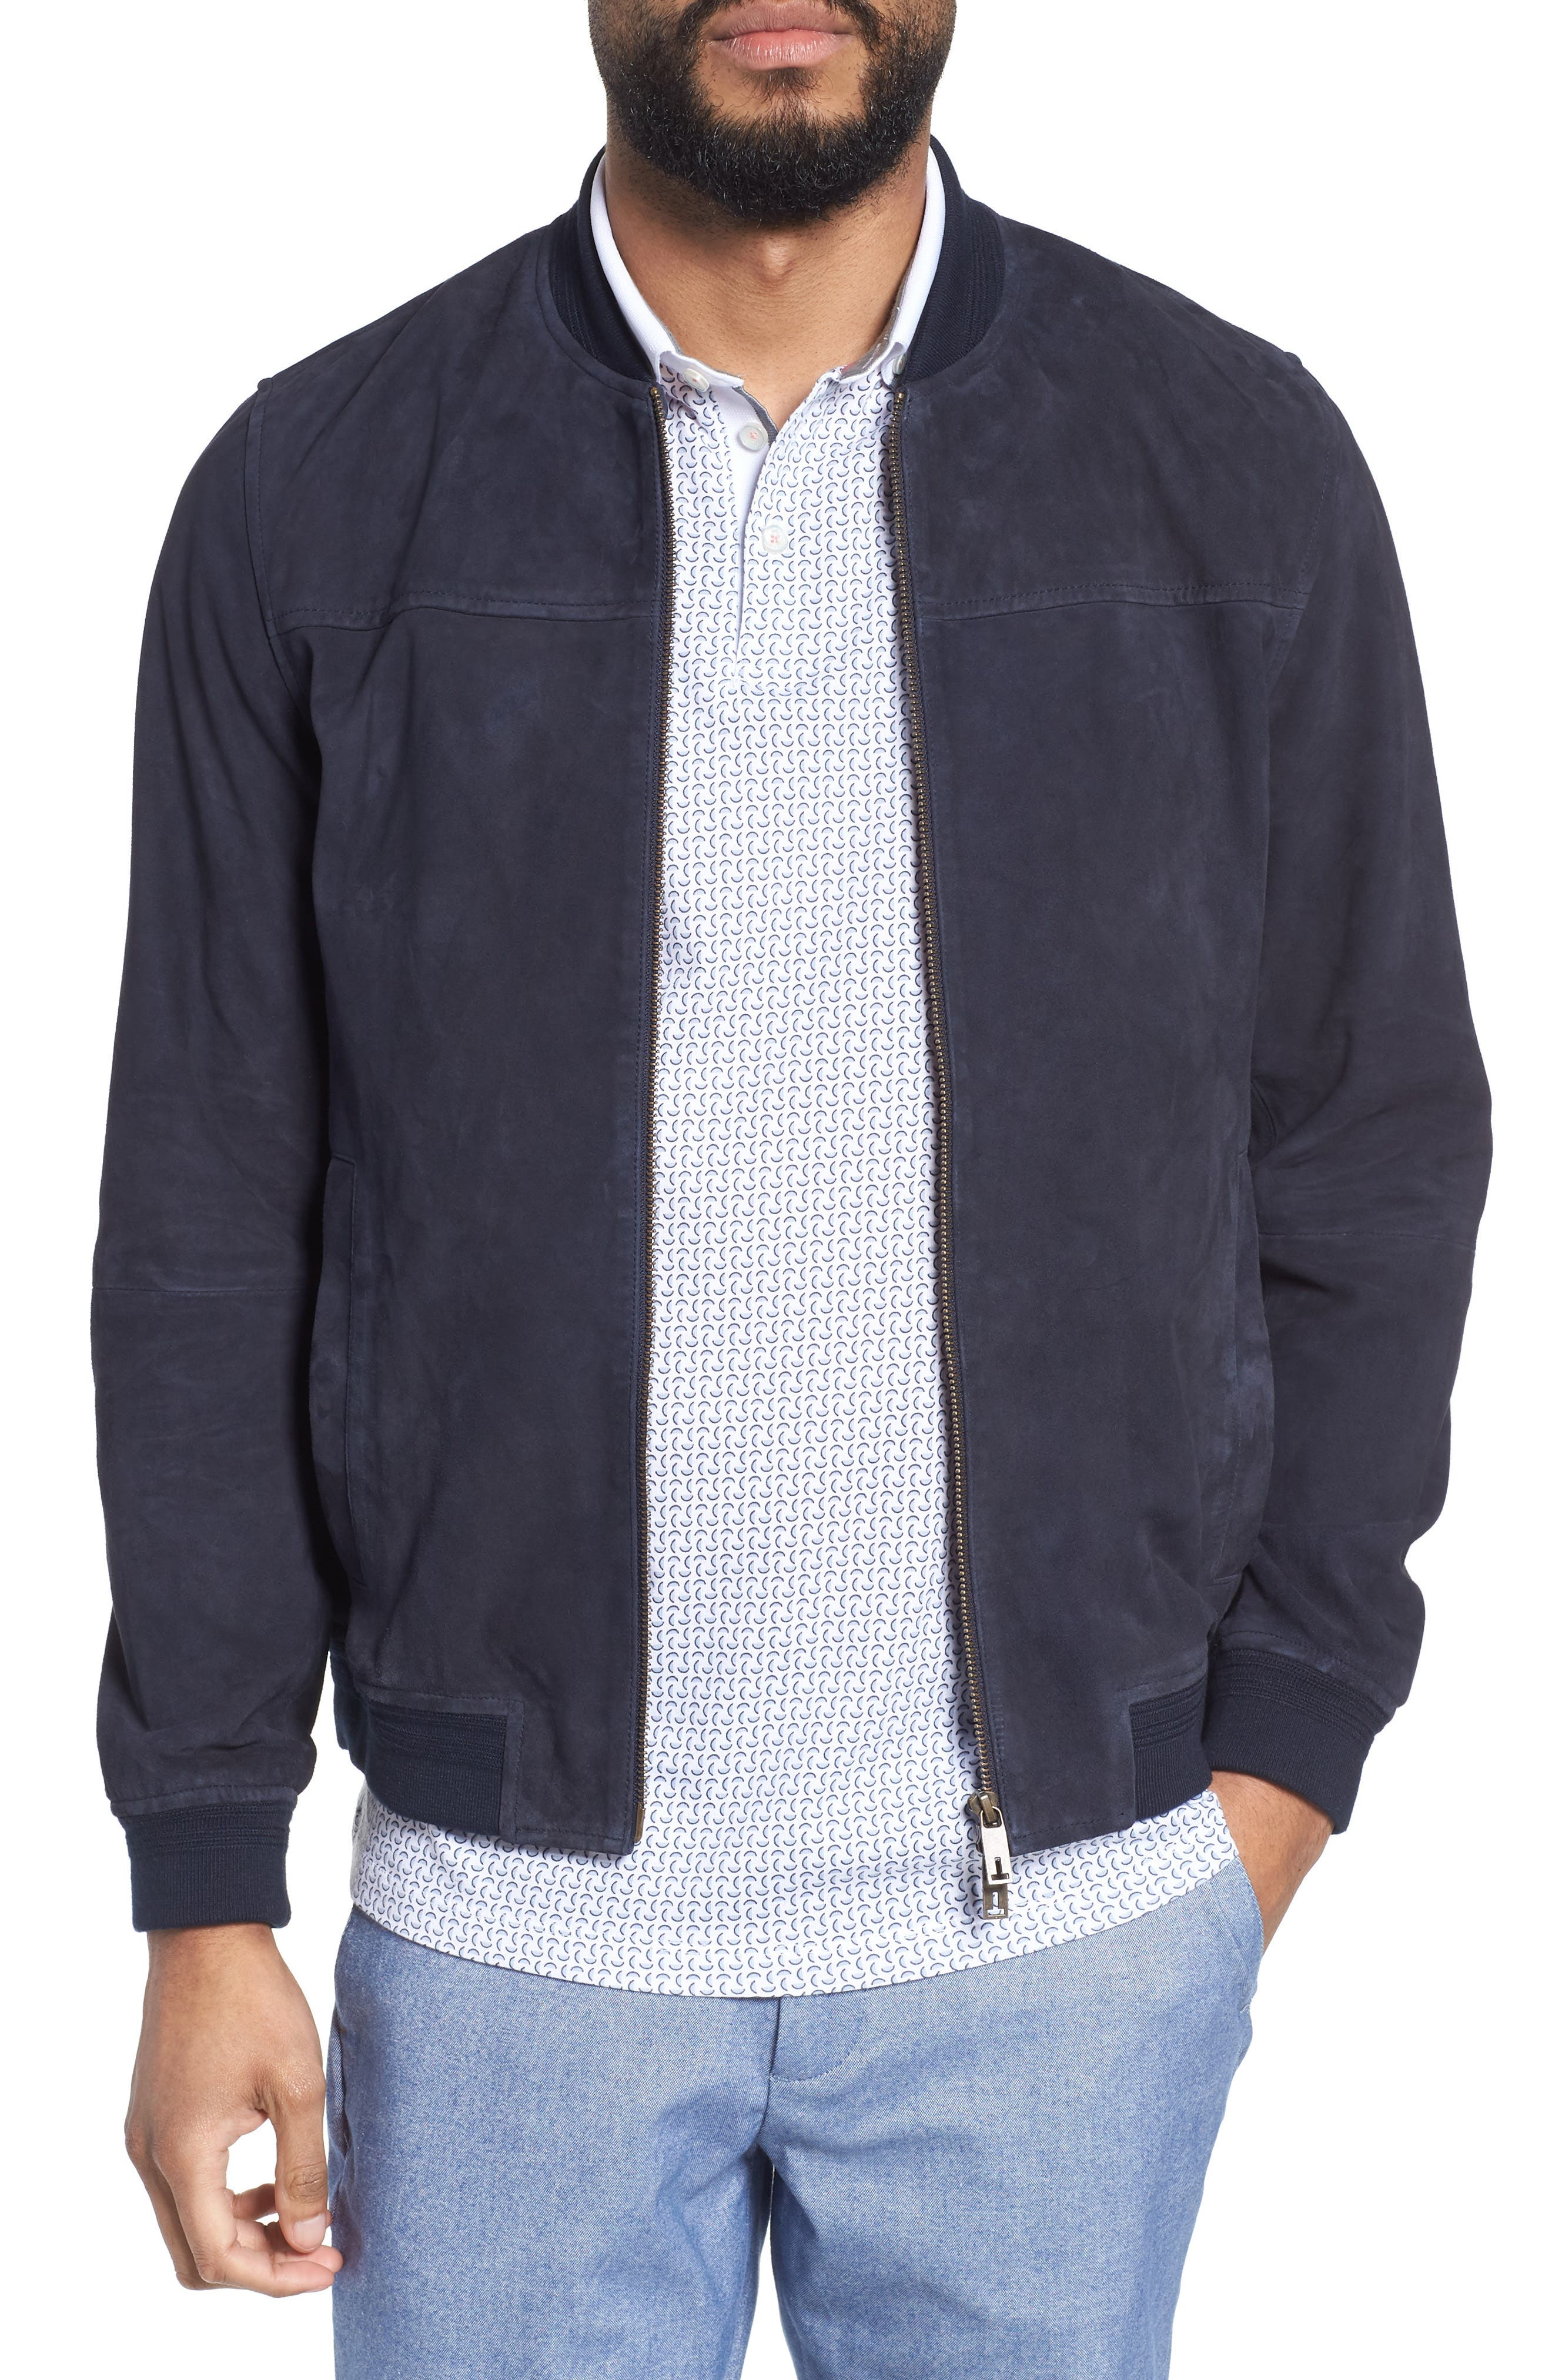 Main Image - Ted Baker London Alibi Trim Fit Suede Bomber Jacket